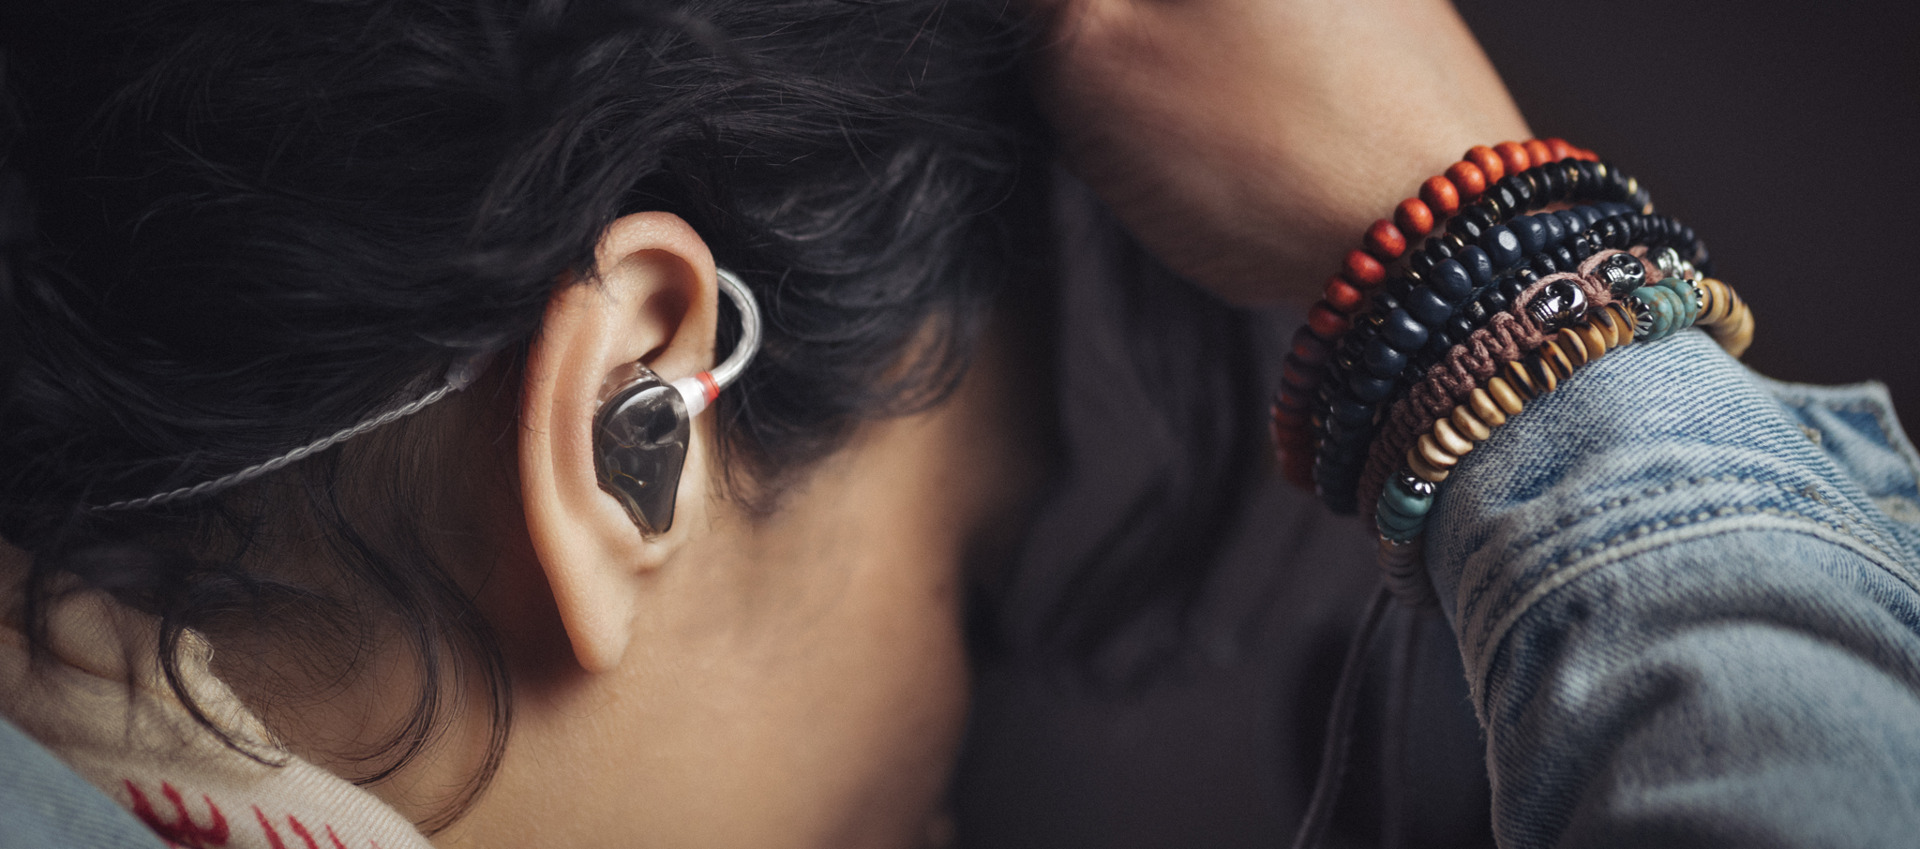 Fischer Amps and Sennheiser launch first custom in-ears with TrueResponse Technology